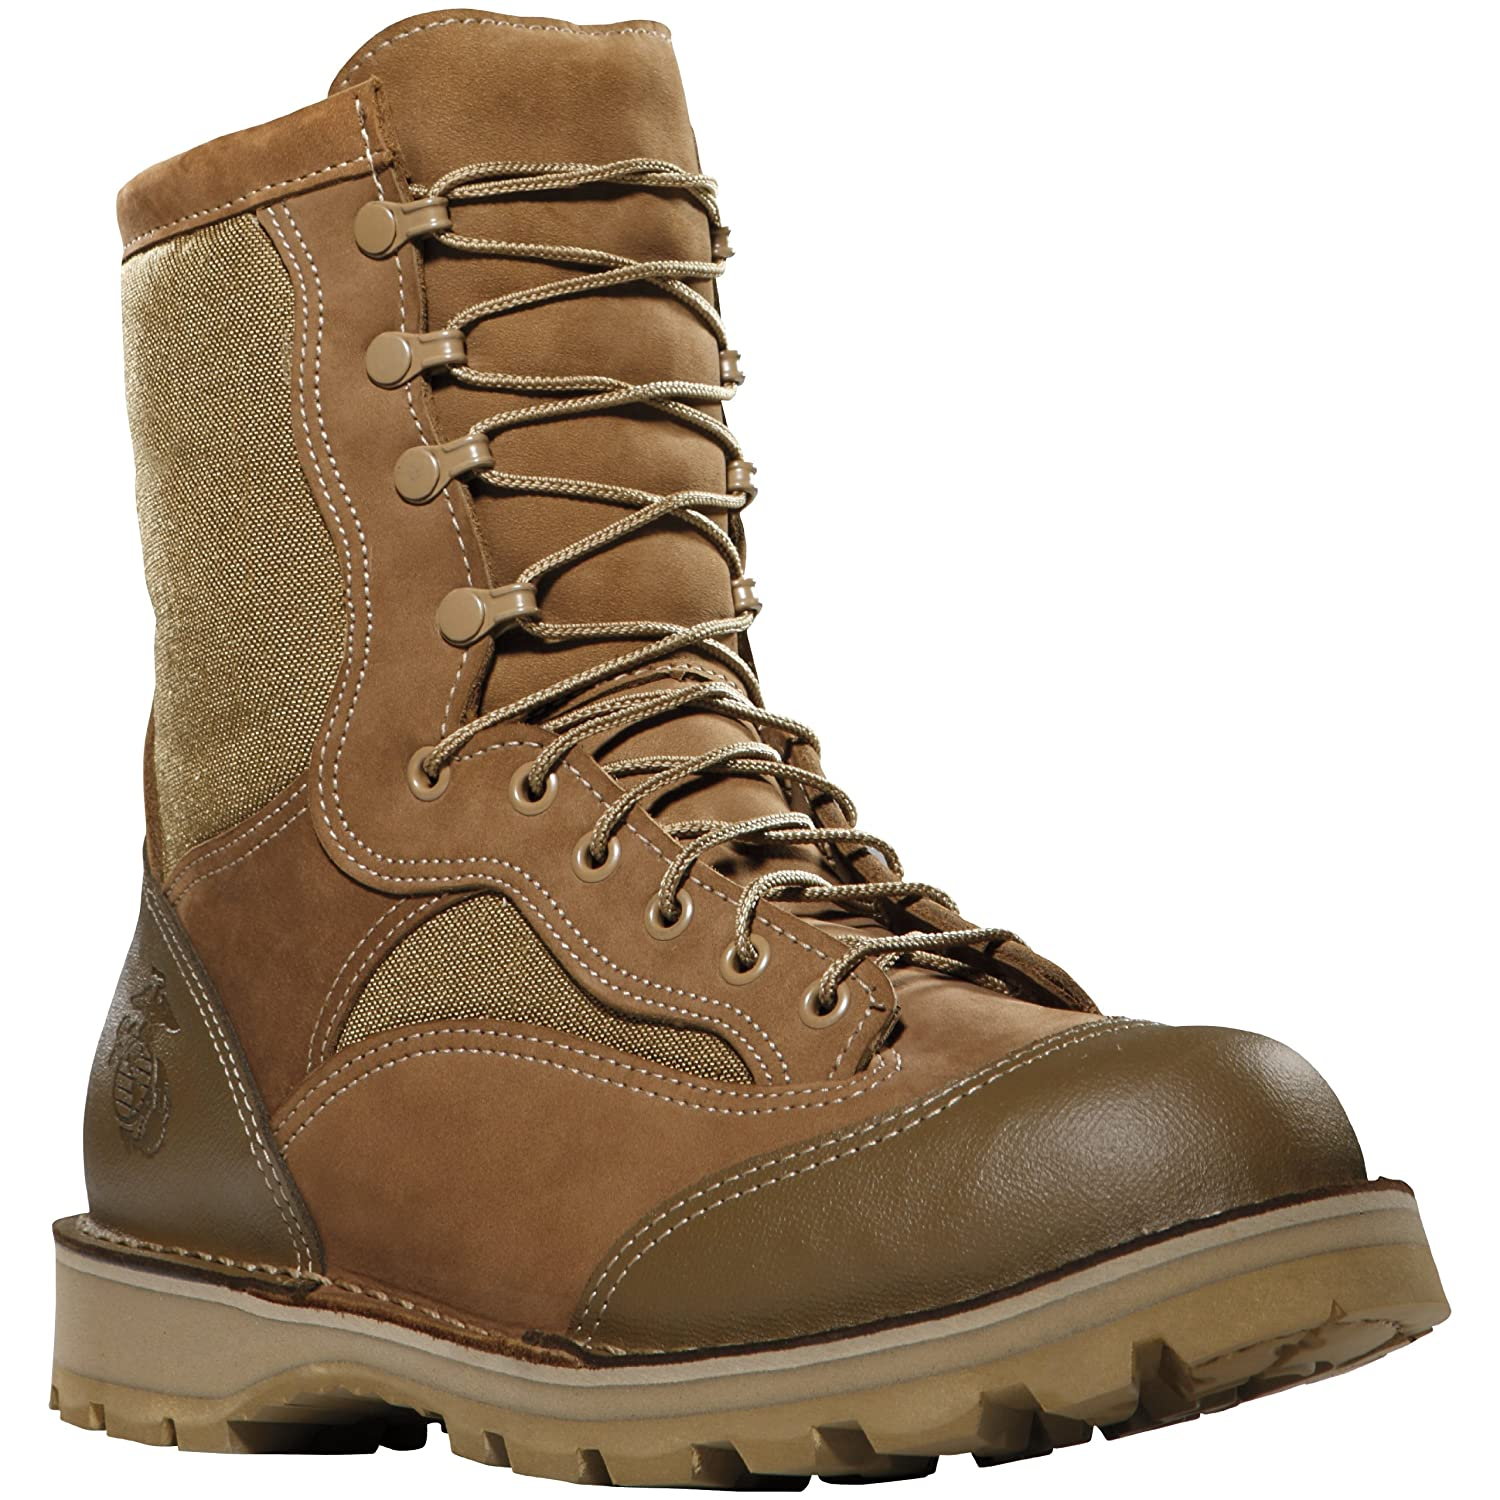 15610X Danner Men's USMC RAT Hot Safety Boots - Brown